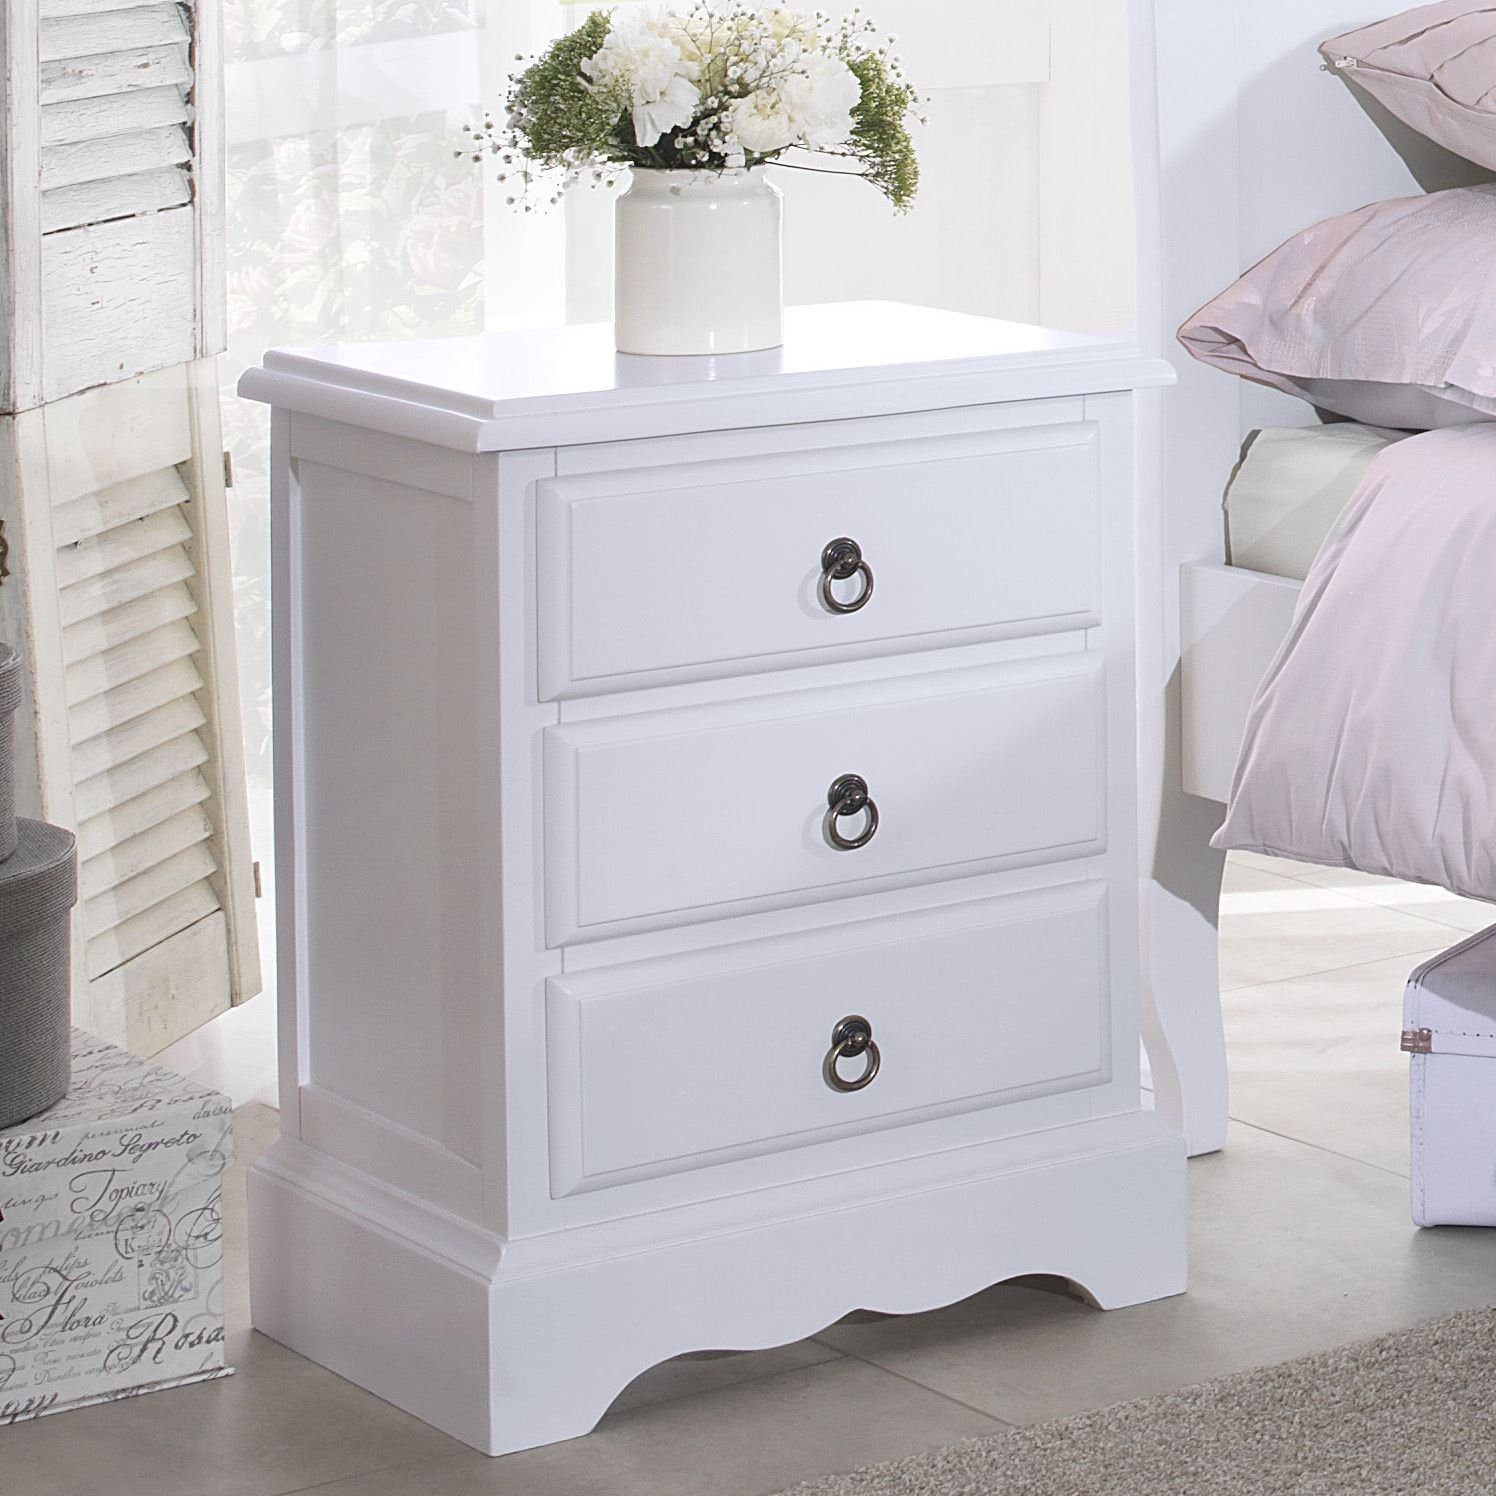 Romance bedside table stunning white bedside cabinet with 3 drawers romance bedside table stunning white bedside cabinet with 3 drawers assembled antique white amazon kitchen home watchthetrailerfo